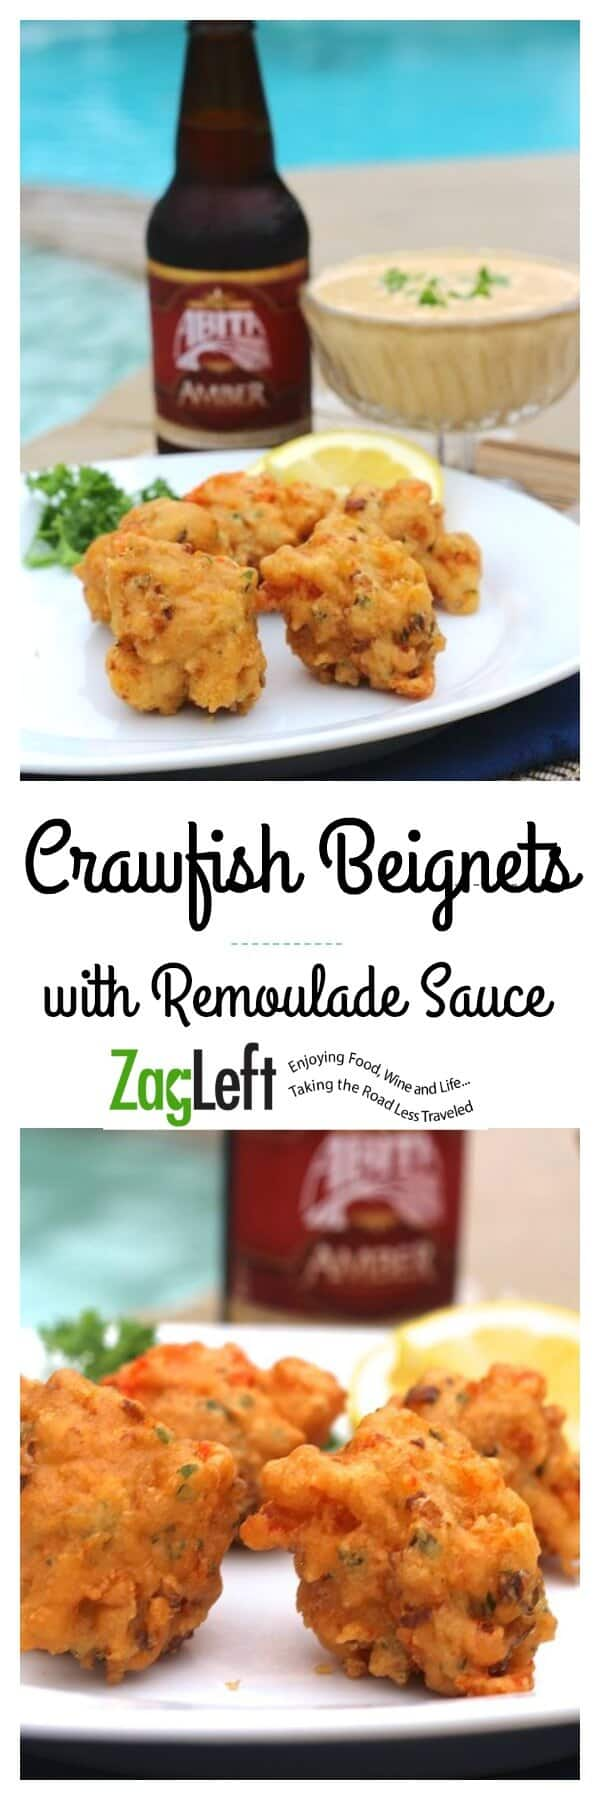 Crispy southern fried Crawfish Beignets with spicy Remoulade Sauce, a savory version of a Louisiana classic...